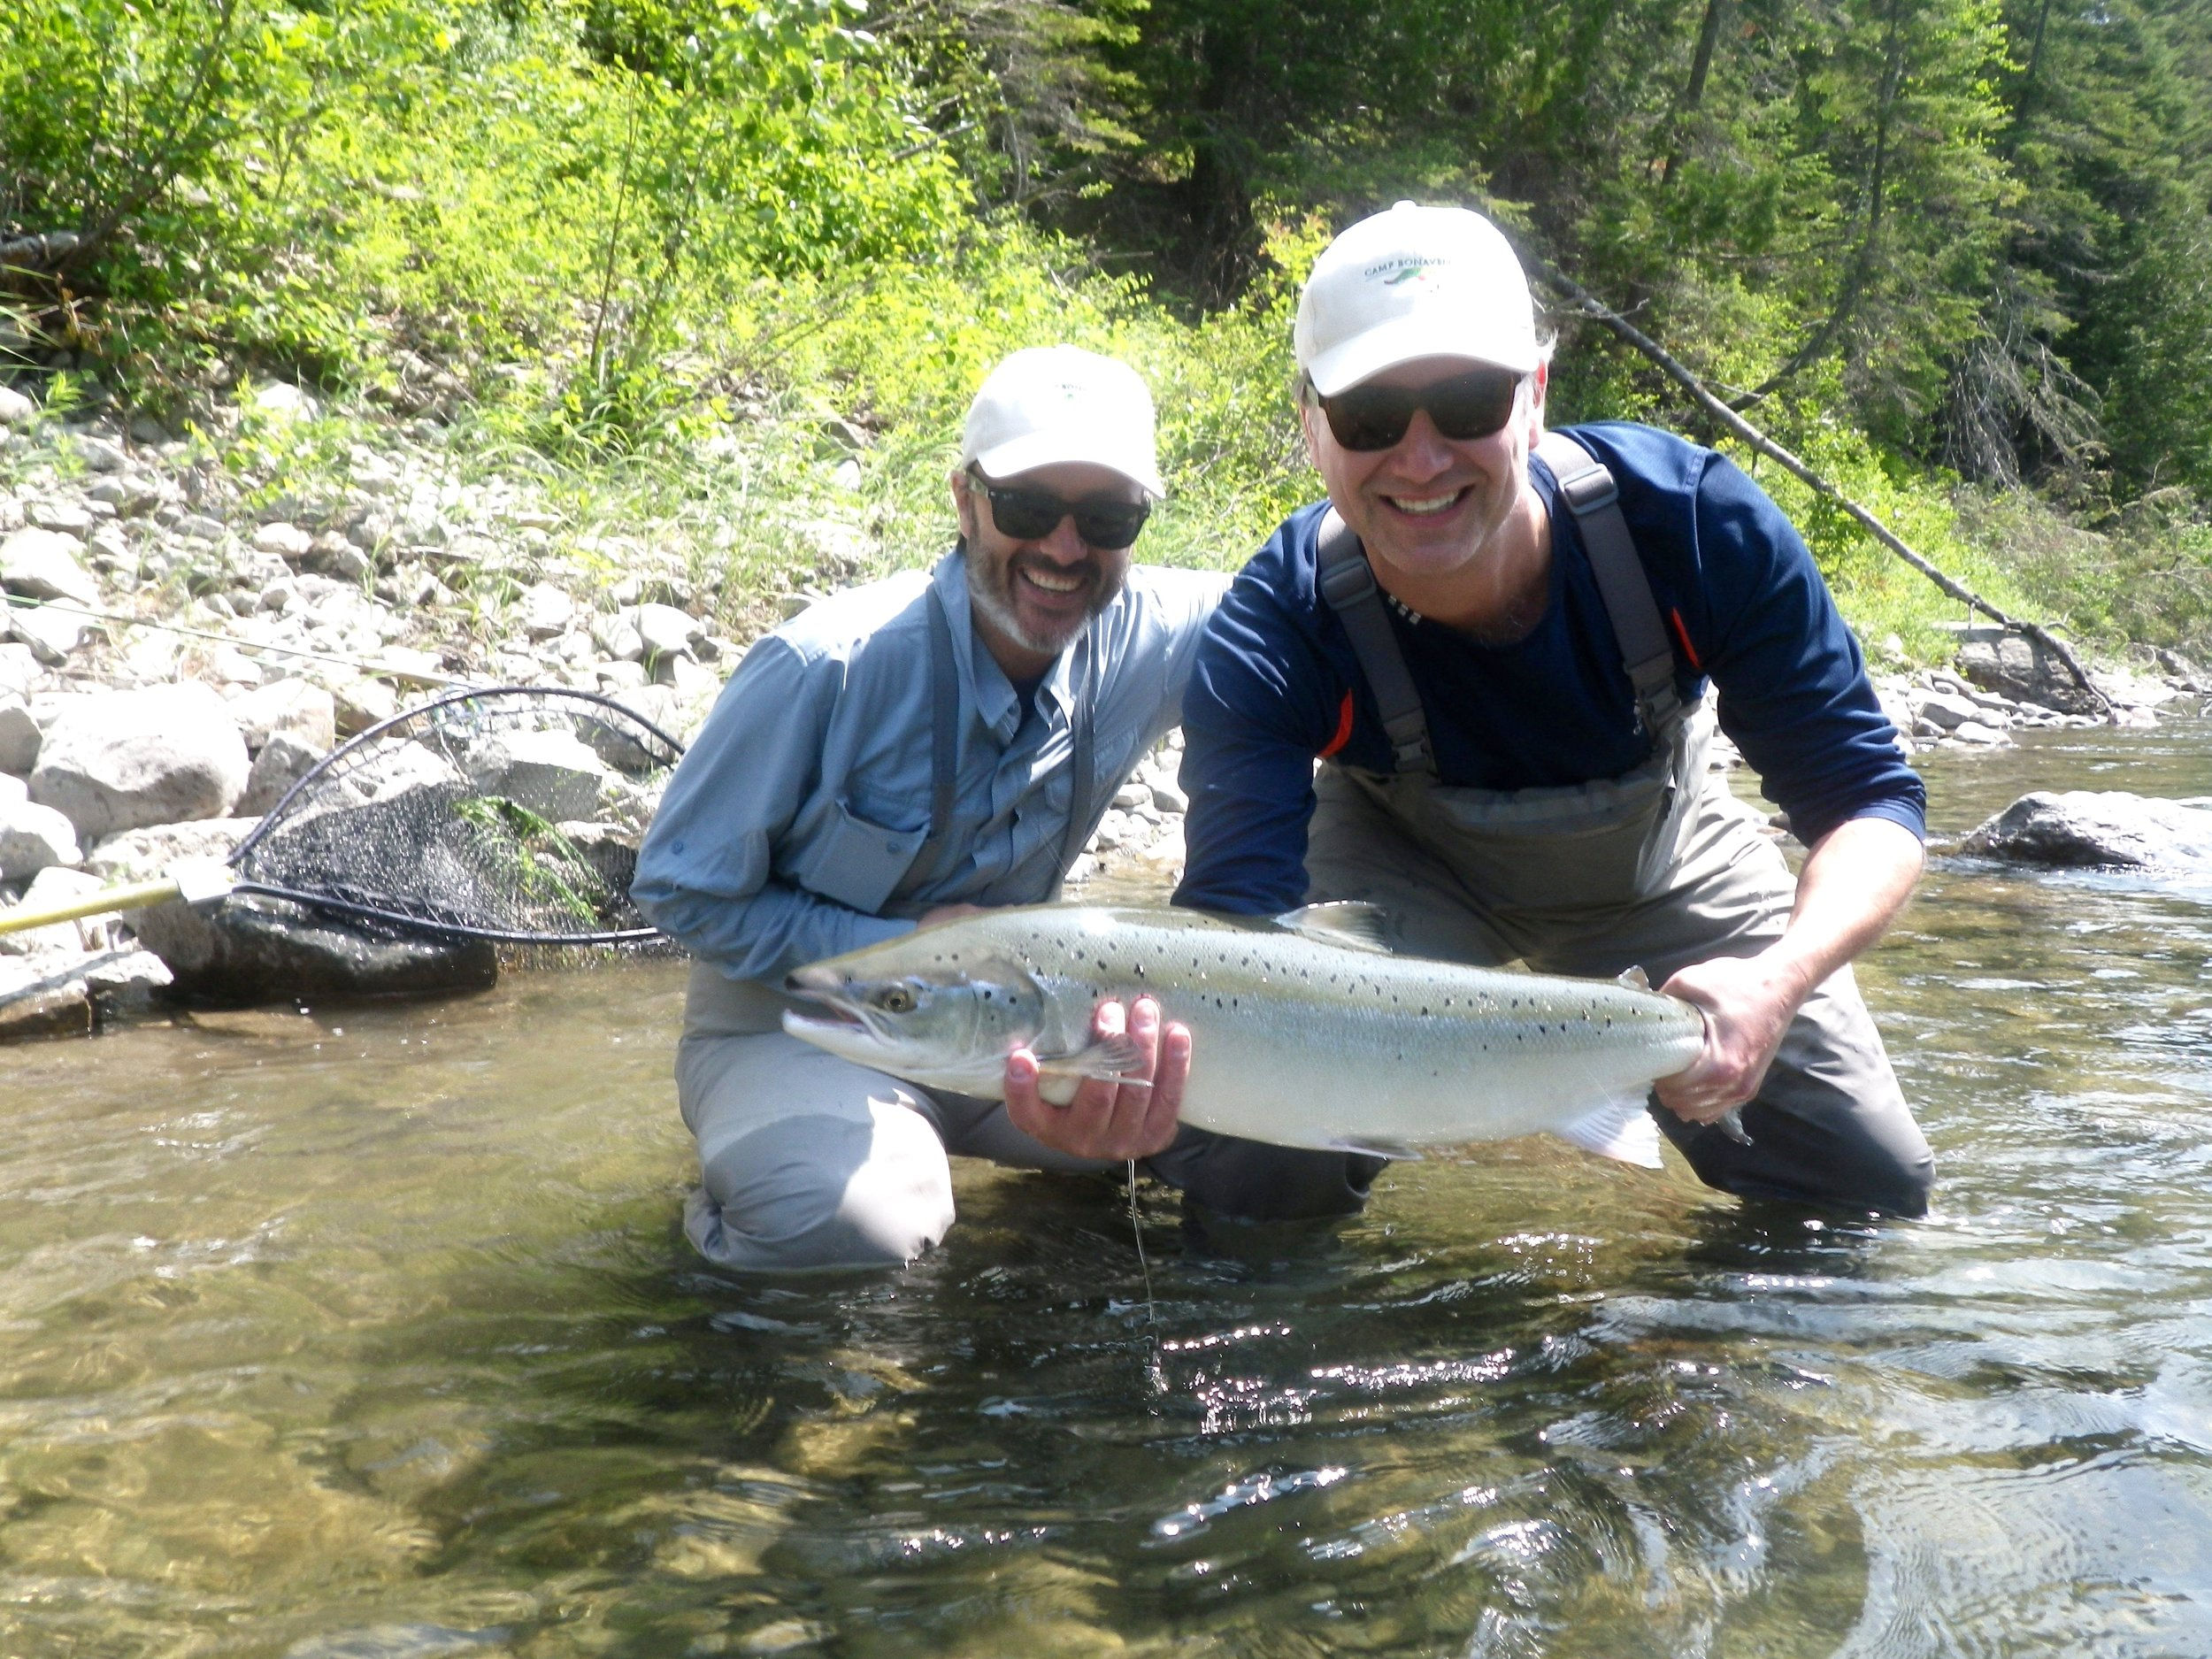 Frederic Boucher (left) picked up a fly for the first time this week, didn't take him long to learn how to cast and catch salmon, congratulations Frederic !